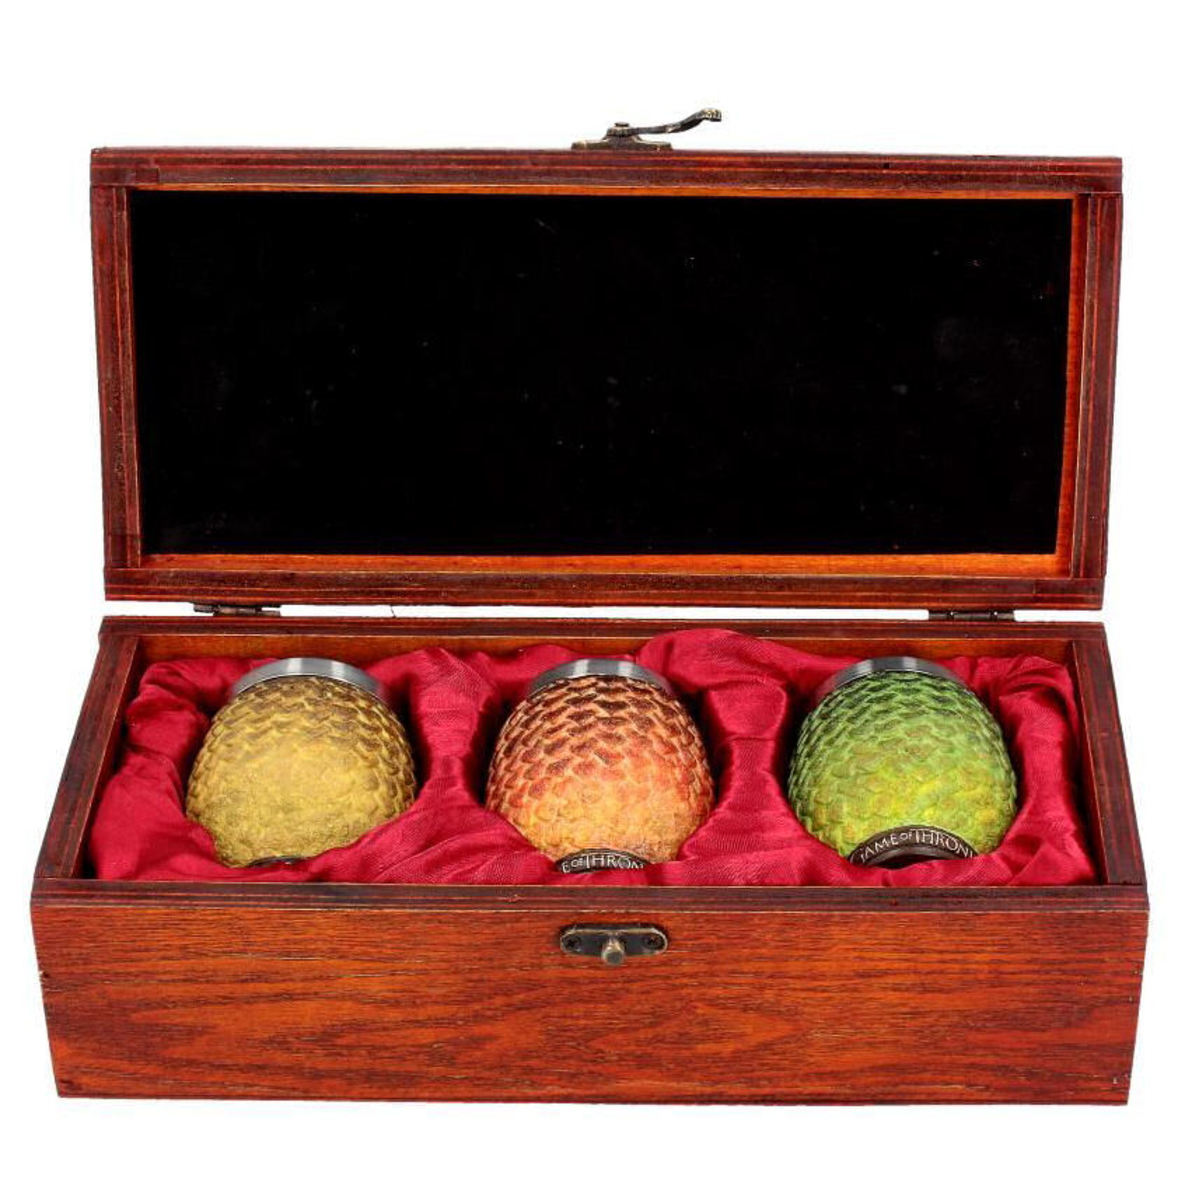 panáky (sada) Game of thrones - Drogon, Rhaegal, Viserion Dragon Egg - B3699J7